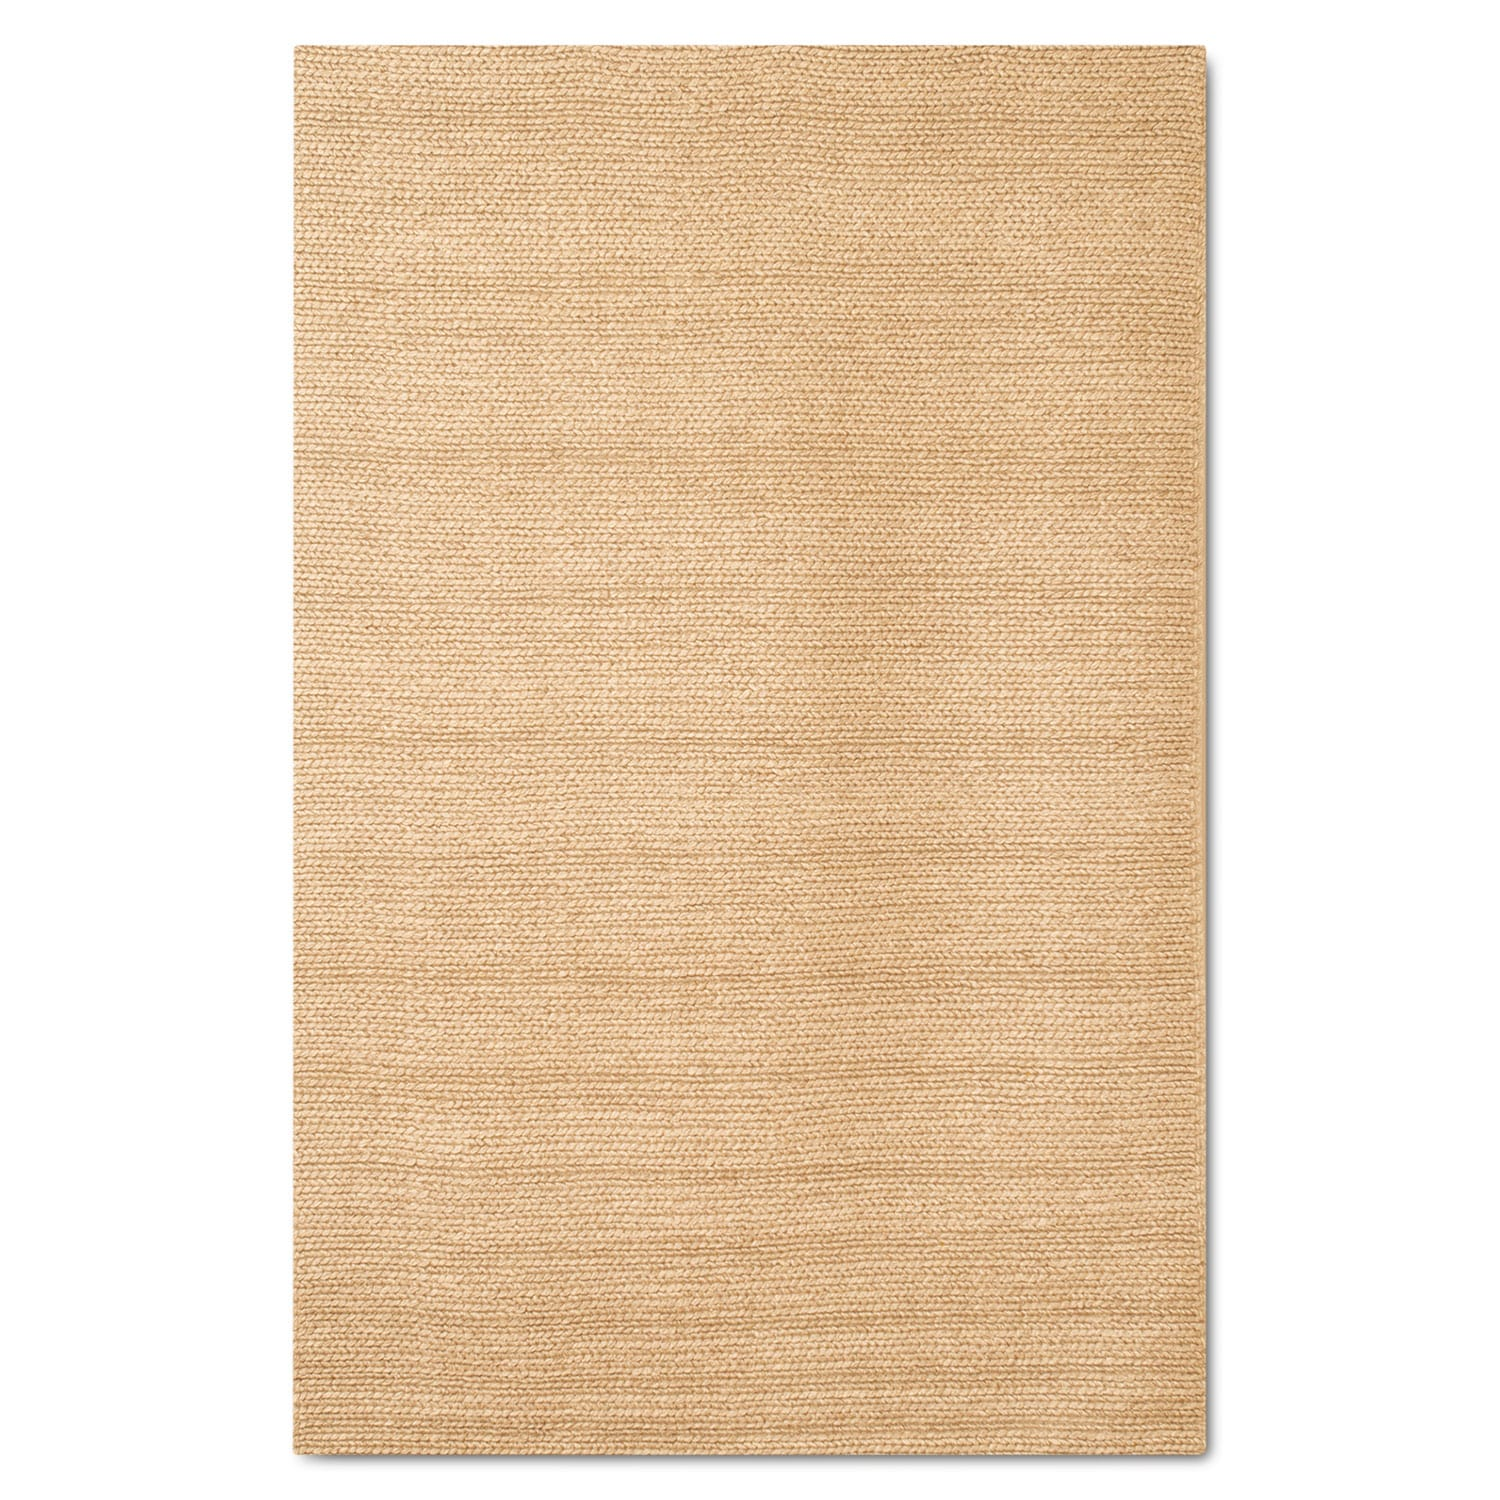 Pixley 5' x 8' Area Rug - Tan